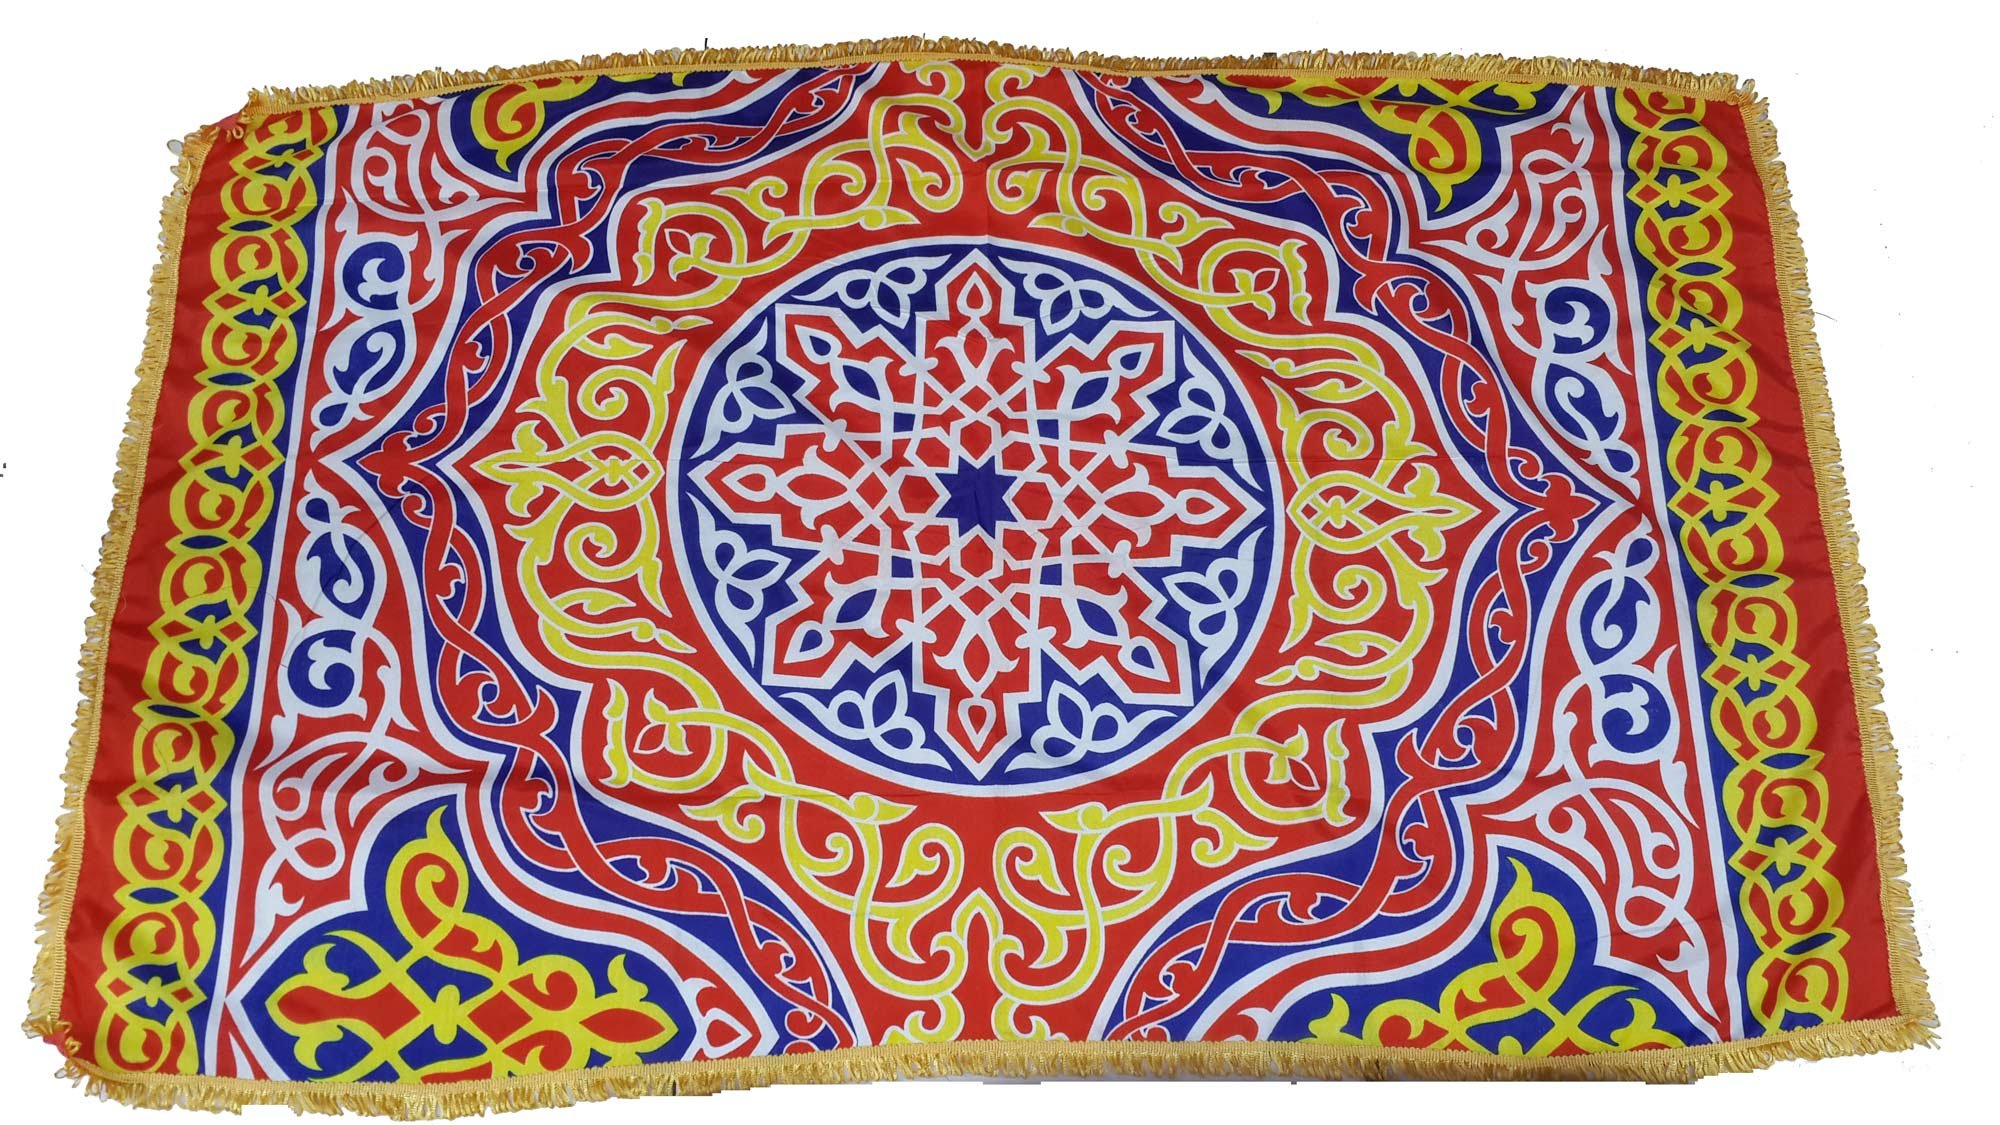 Egypt gift shops Exotic Tent Appliqué Textile Egyptian Khayamiya Ramadan Fabric Arabesque Patterns Islamic Ornate Table Topper Top Wall Decor Party Sofa Chair Cover Yellow Fringes Stitched Edges Trim